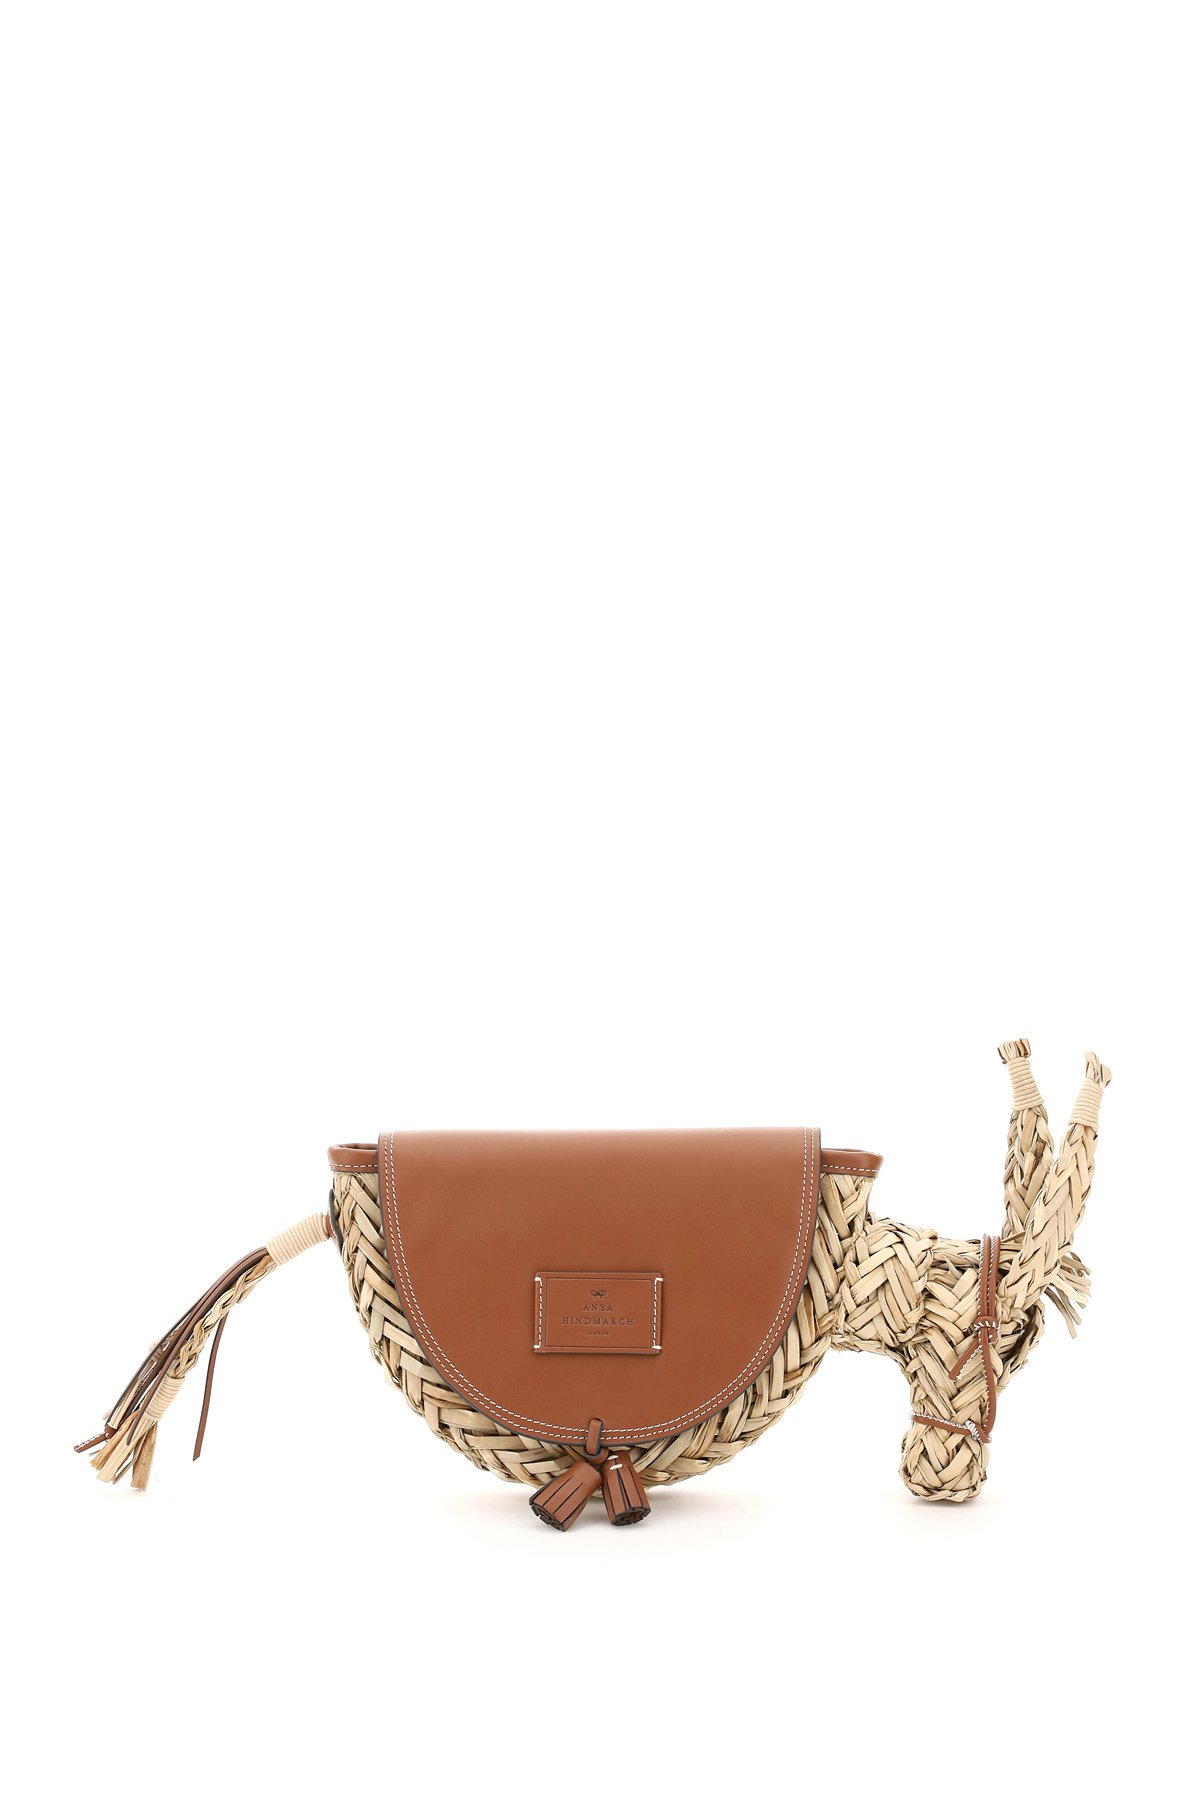 Anya hindmarch clutch donkey in seagrass e pelle